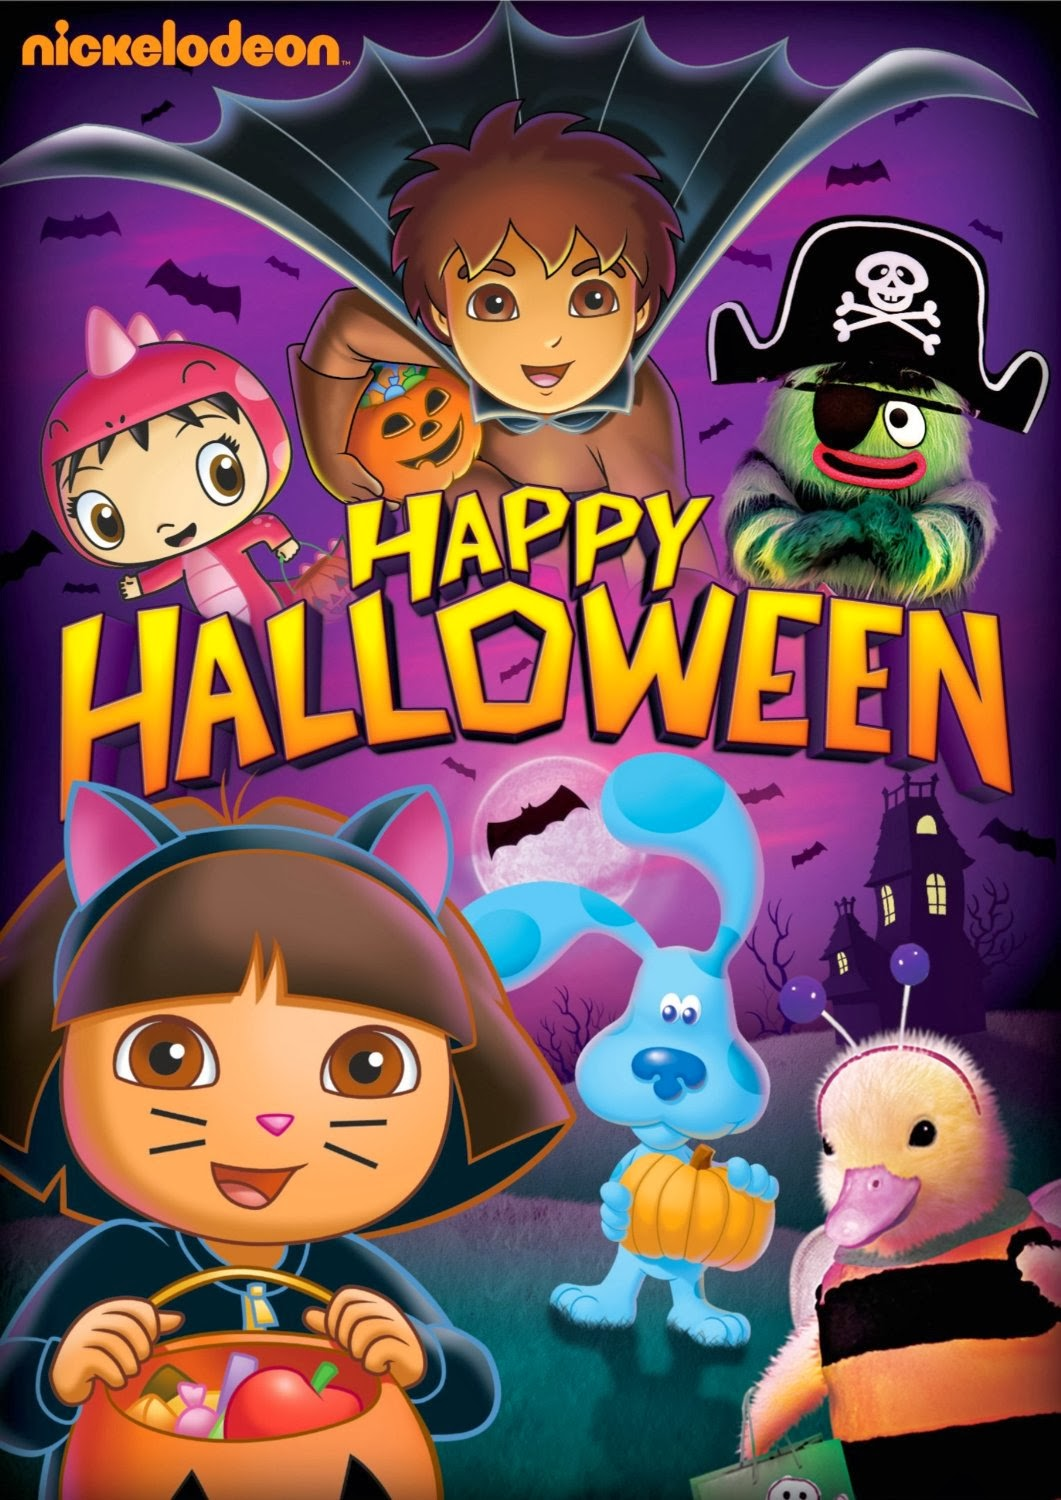 Halloween Is A Special Time Of Year And This DVD Has All Your Favorite Nickelodeon Friends As They Discover Candy Costumes Haunted Happenings